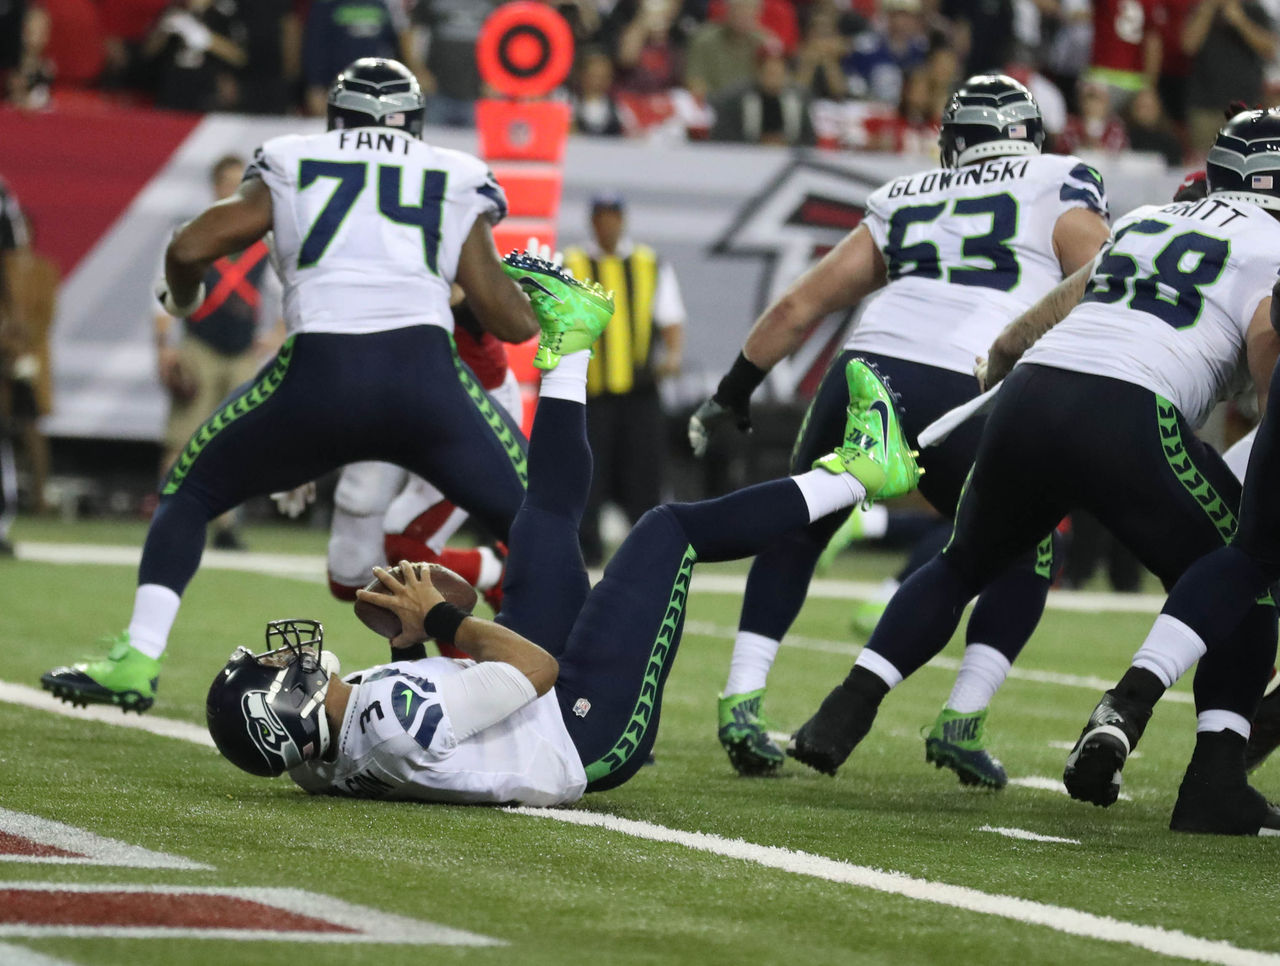 Cropped_2017-01-14t223658z_2124658175_nocid_rtrmadp_3_nfl-nfc-divisional-seattle-seahawks-at-atlanta-falcons